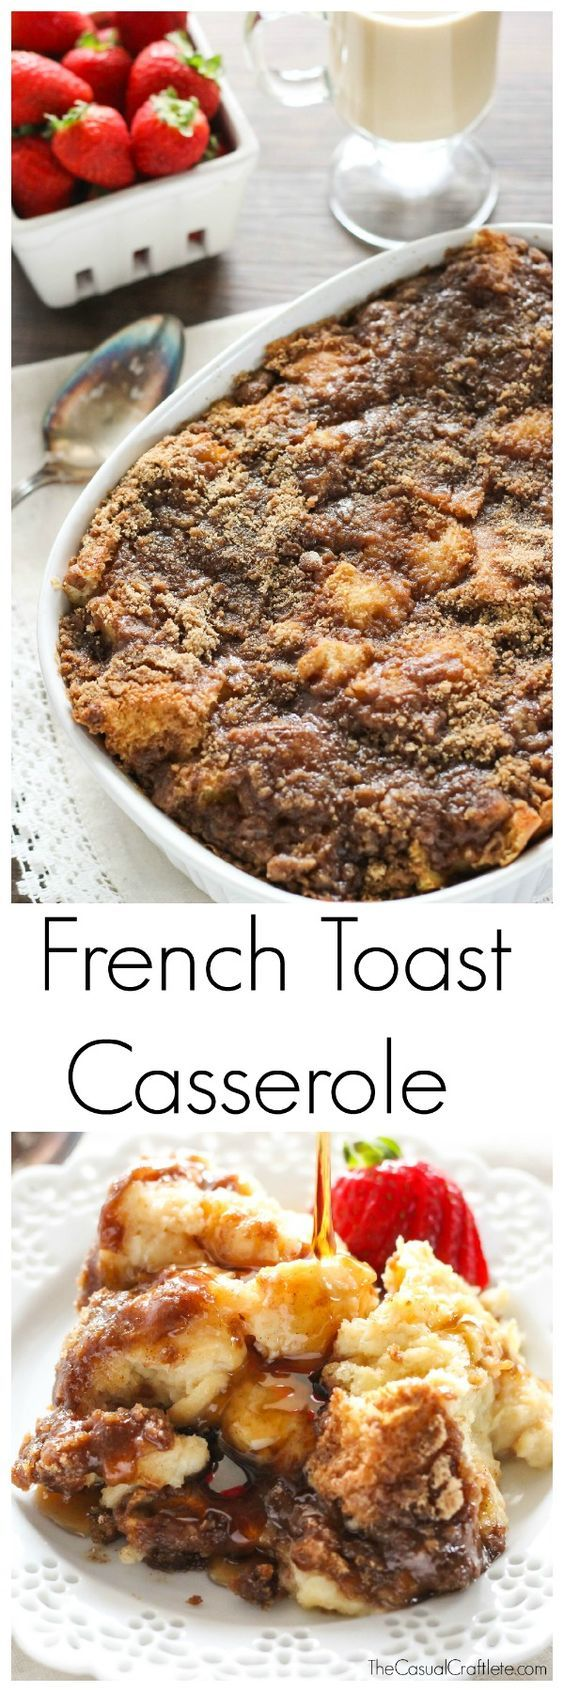 This make ahead French Toast Casserole recipe is easy to put together and a great breakfast or brunch for the holidays.